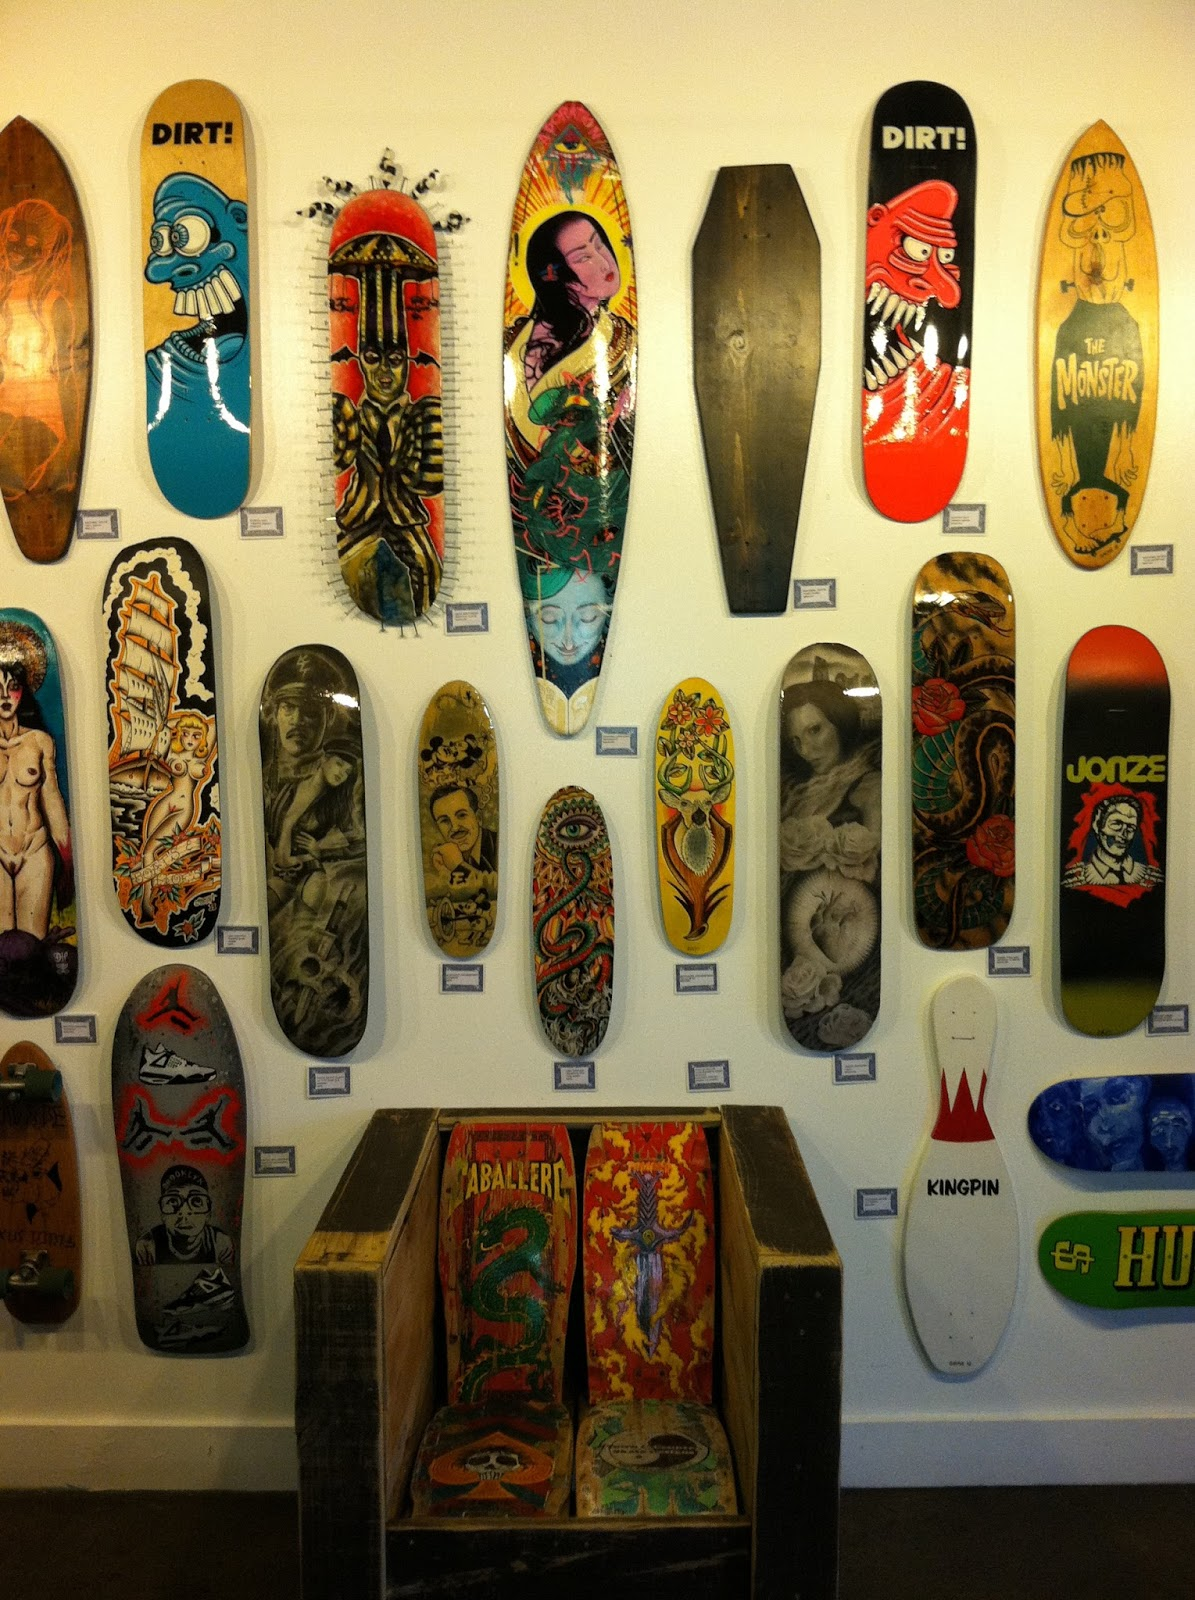 Duff Clothing Skateboard Deck Art Show At Kustom Thrills